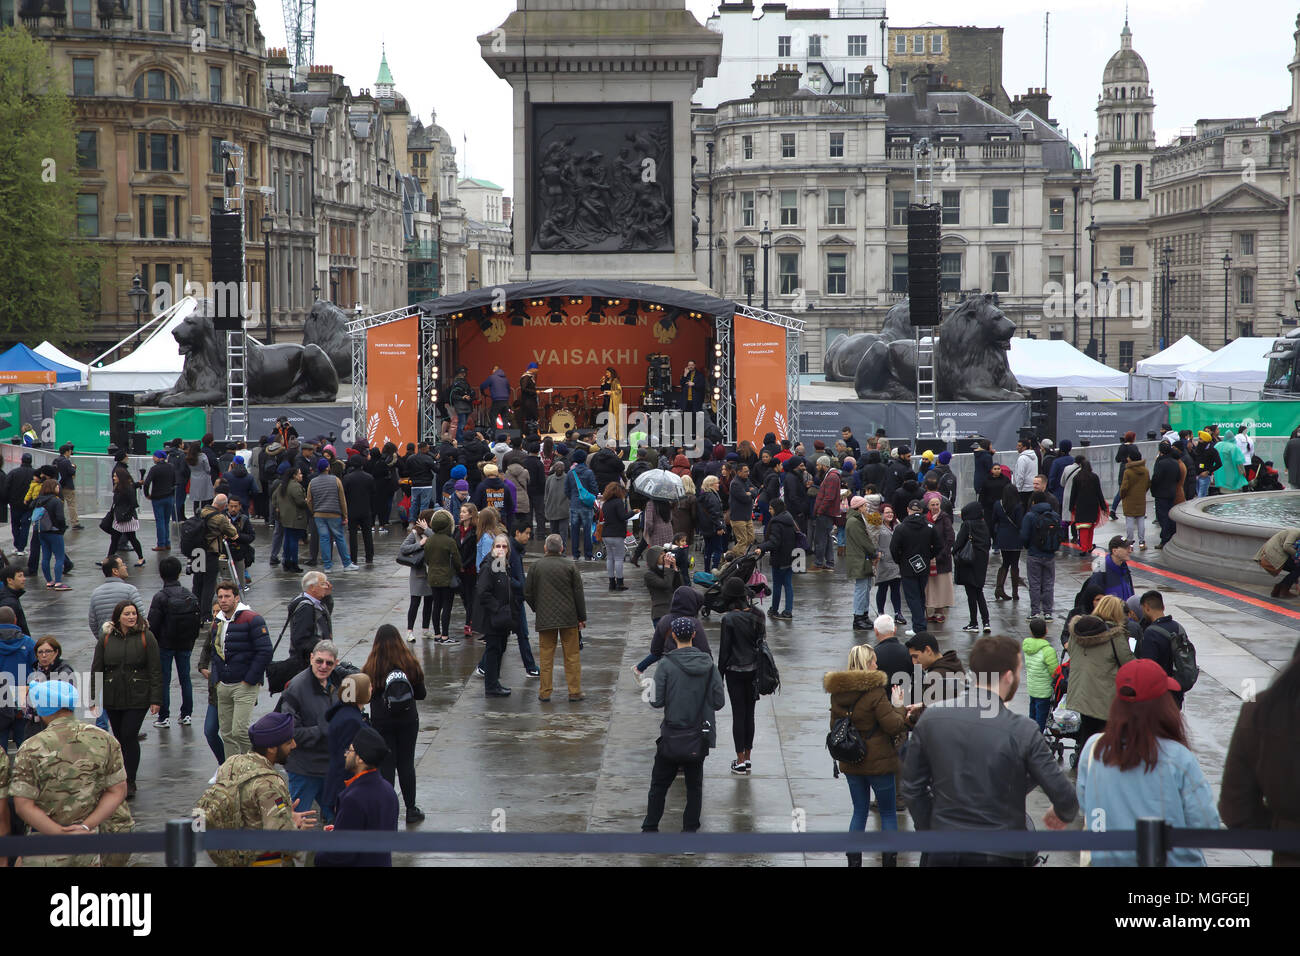 London,UK,28th April 2018,The Mayor of London, Sadiq Khan celebrates Vaisakhi in Trafalgar Square London. Vaisakhi festival is a celebration of Sikh and Punjabi tradition, heritage and culture, commemorating the birth of the Khalsa (the inner core of the Sikh faith) over 300 years ago. There are free live music performances on stage along with traditional food stalls and a army led obstacle course.Credit Keith Larby/Alamy Live News Stock Photo